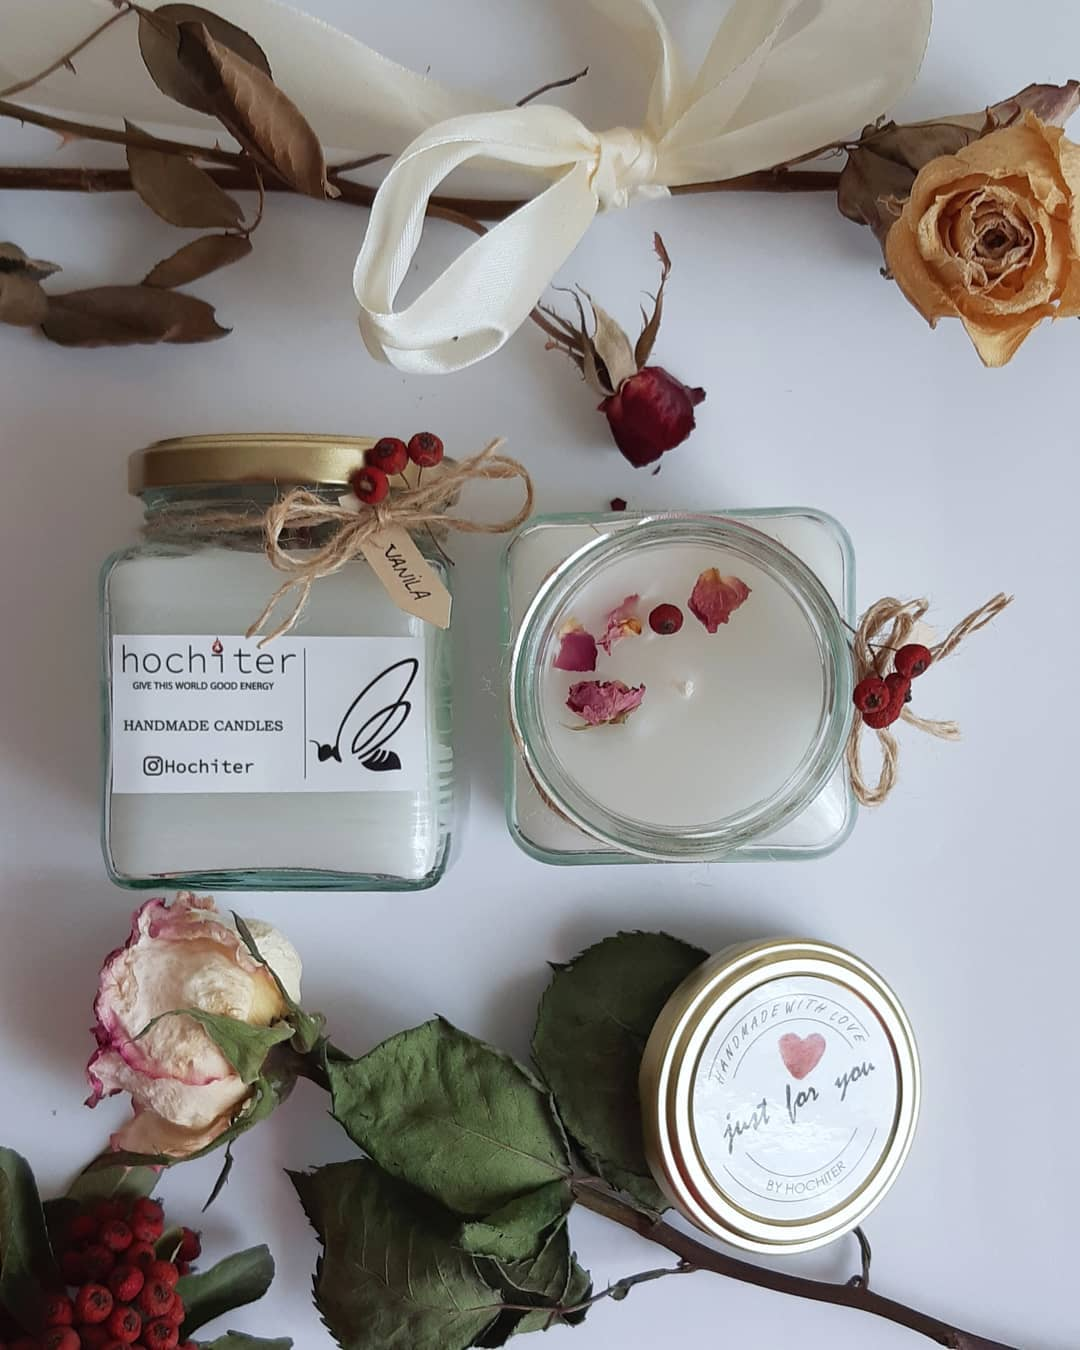 ☆H O C H I T E R☆ . شمع مدرن شیشه ای 🕯 Candleart - Home Accessories